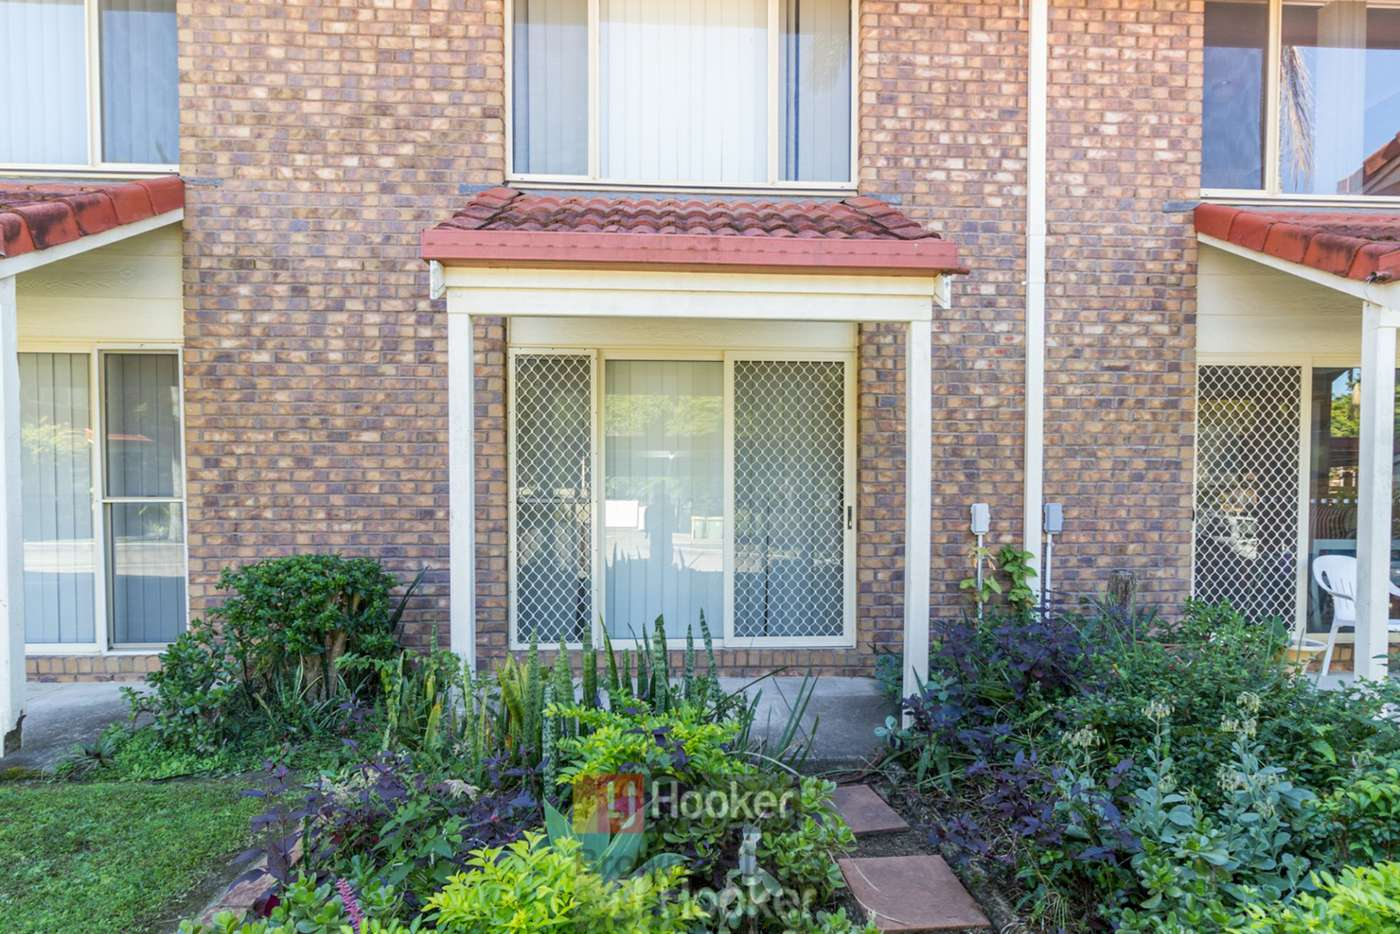 Main view of Homely townhouse listing, 74/3 Costata Street, Hillcrest QLD 4118